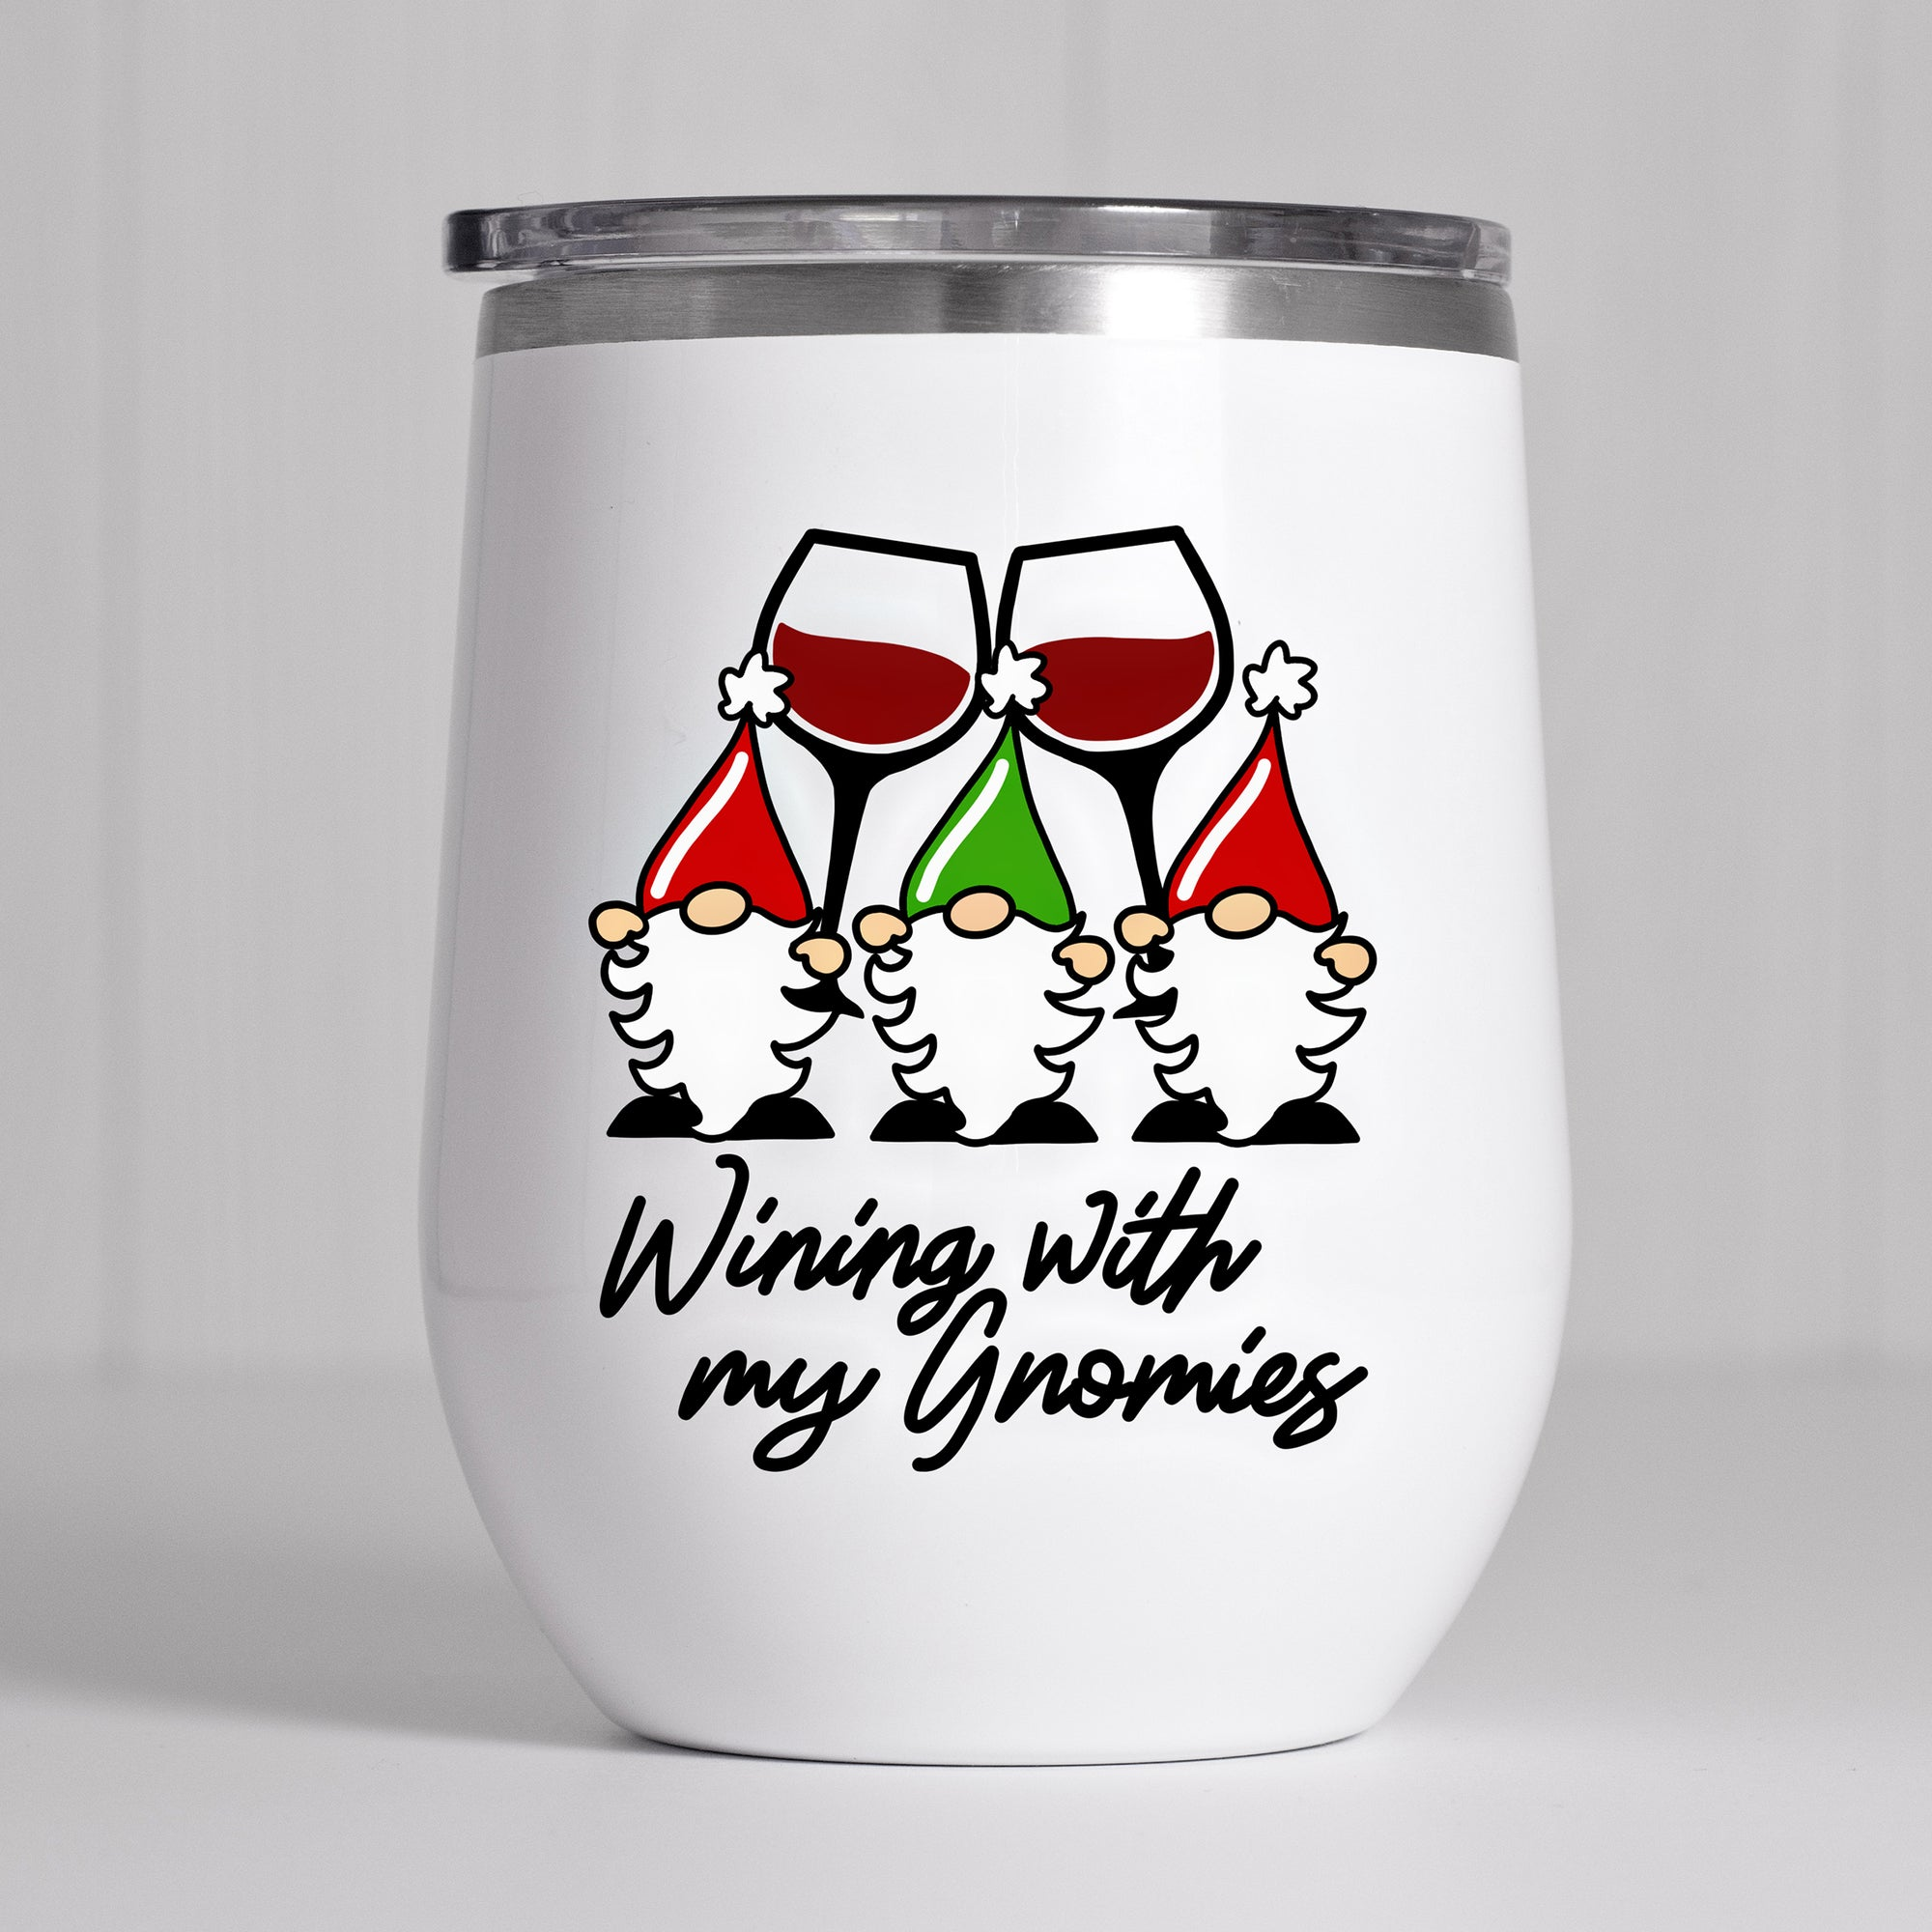 Funny Christmas Wine Glass SVG File, Christmas Gnome Wine Glass SVG, Christmas SVG File, Wine Glass Saying SVG